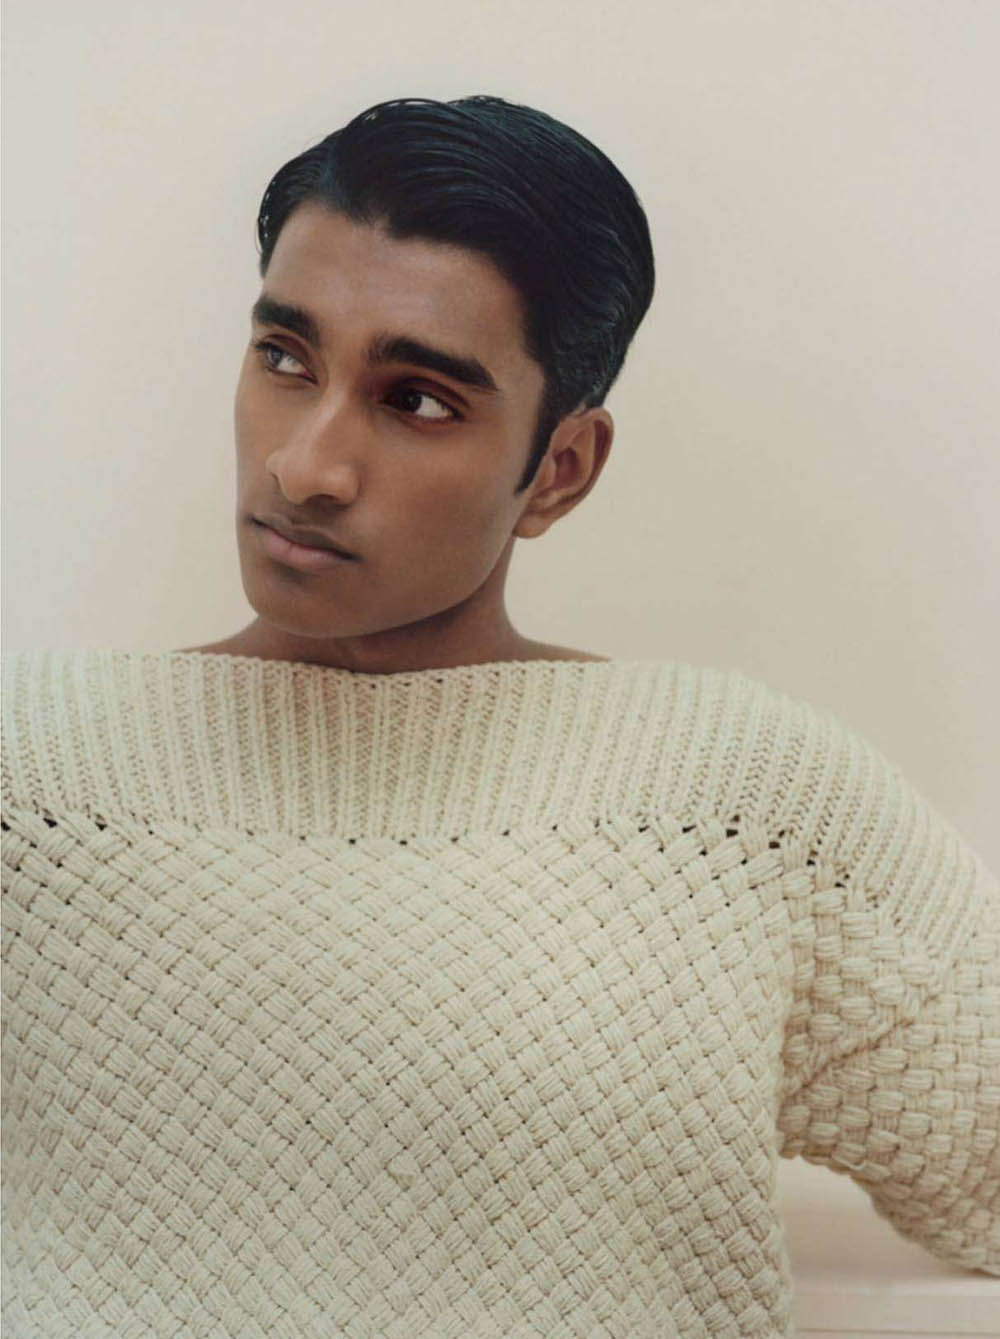 Jeenu Mahadevan by Dham Srifuengfung for GQ France April 2019